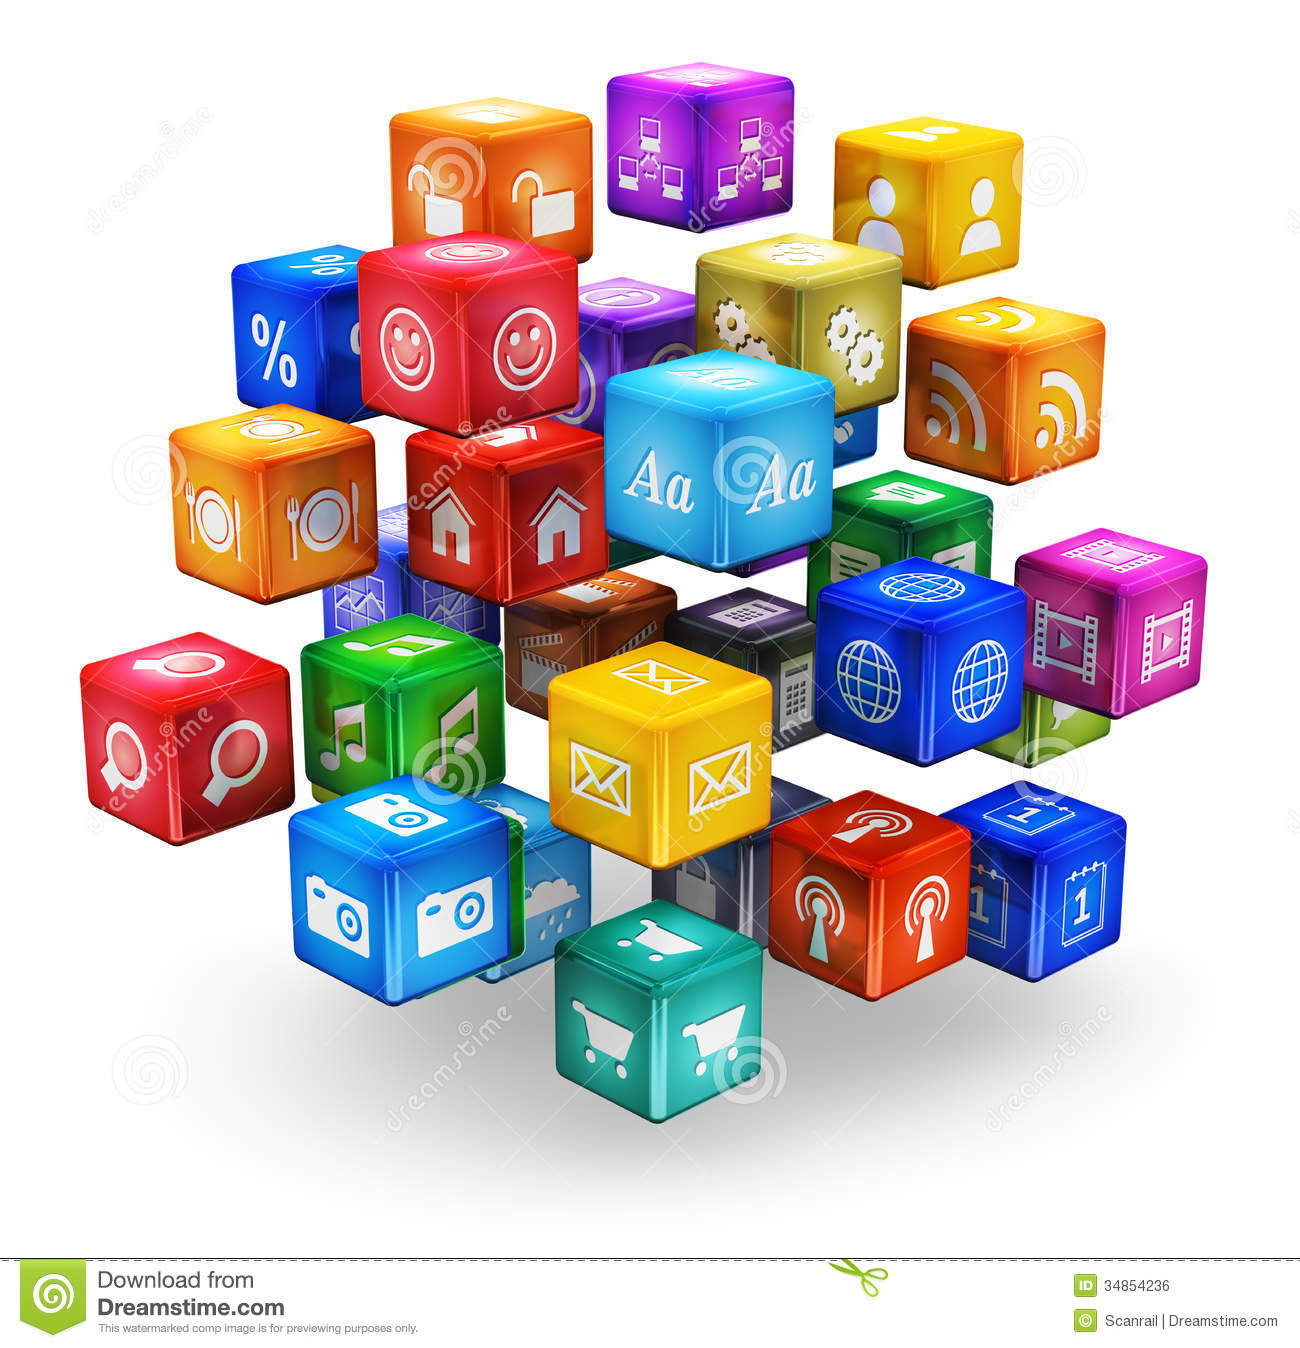 10 Computer Application Icons Images - Information ...